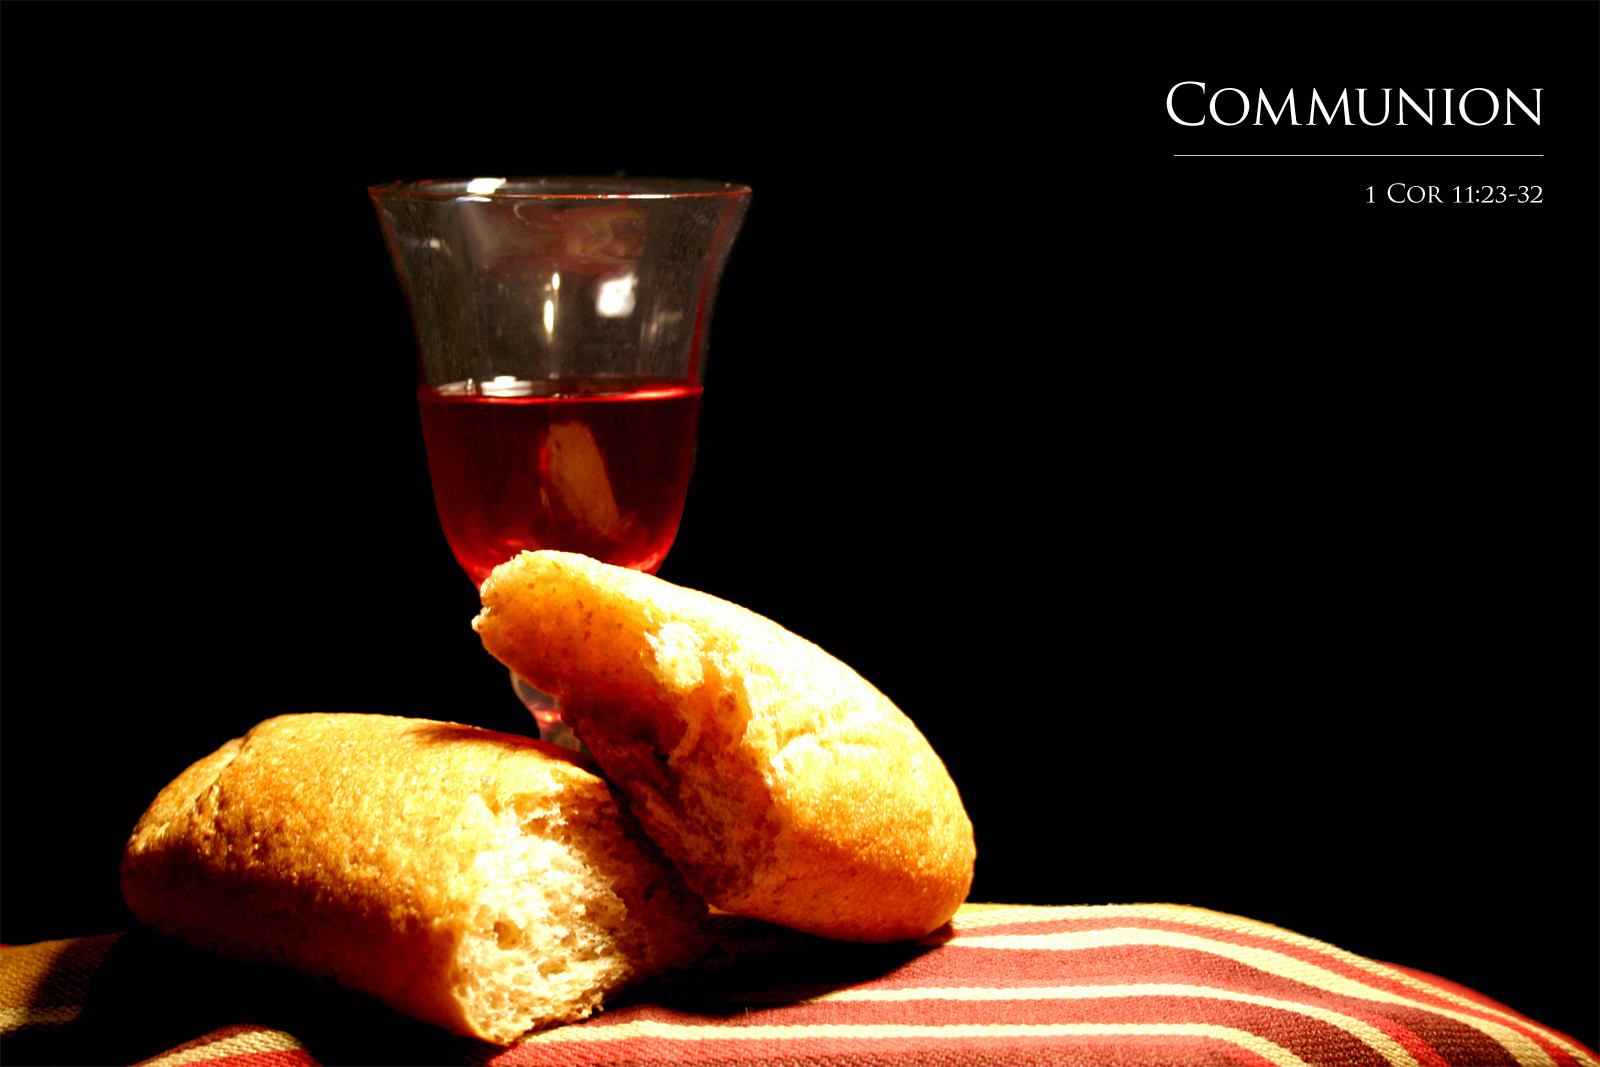 Communion | GospelLight Community Church